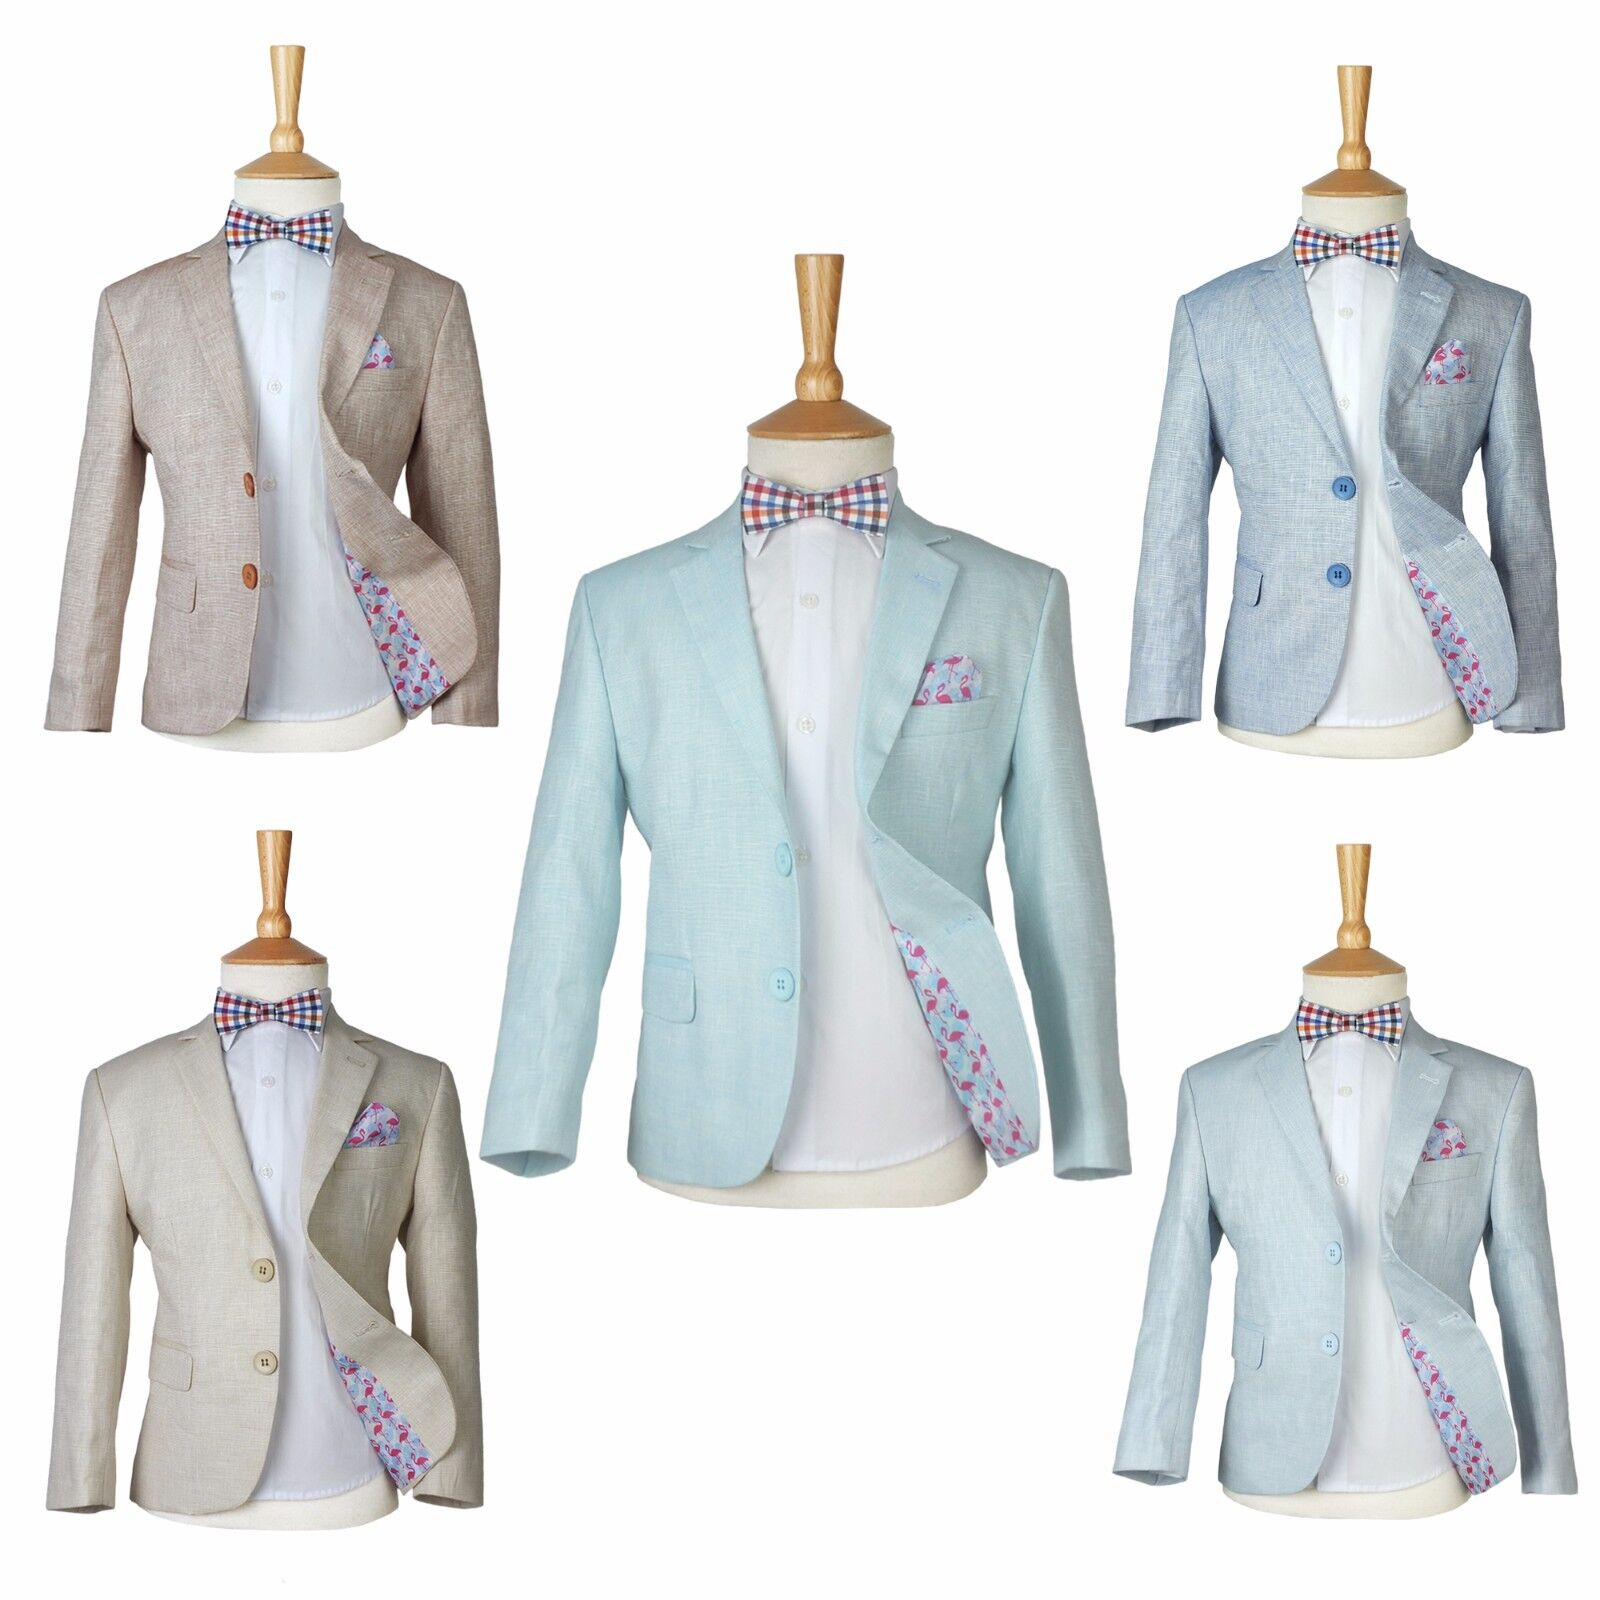 9c6879aa9 Boys Linen Casual Suits Page Boy Kids Summer Outfit Boy Formal Suit ...